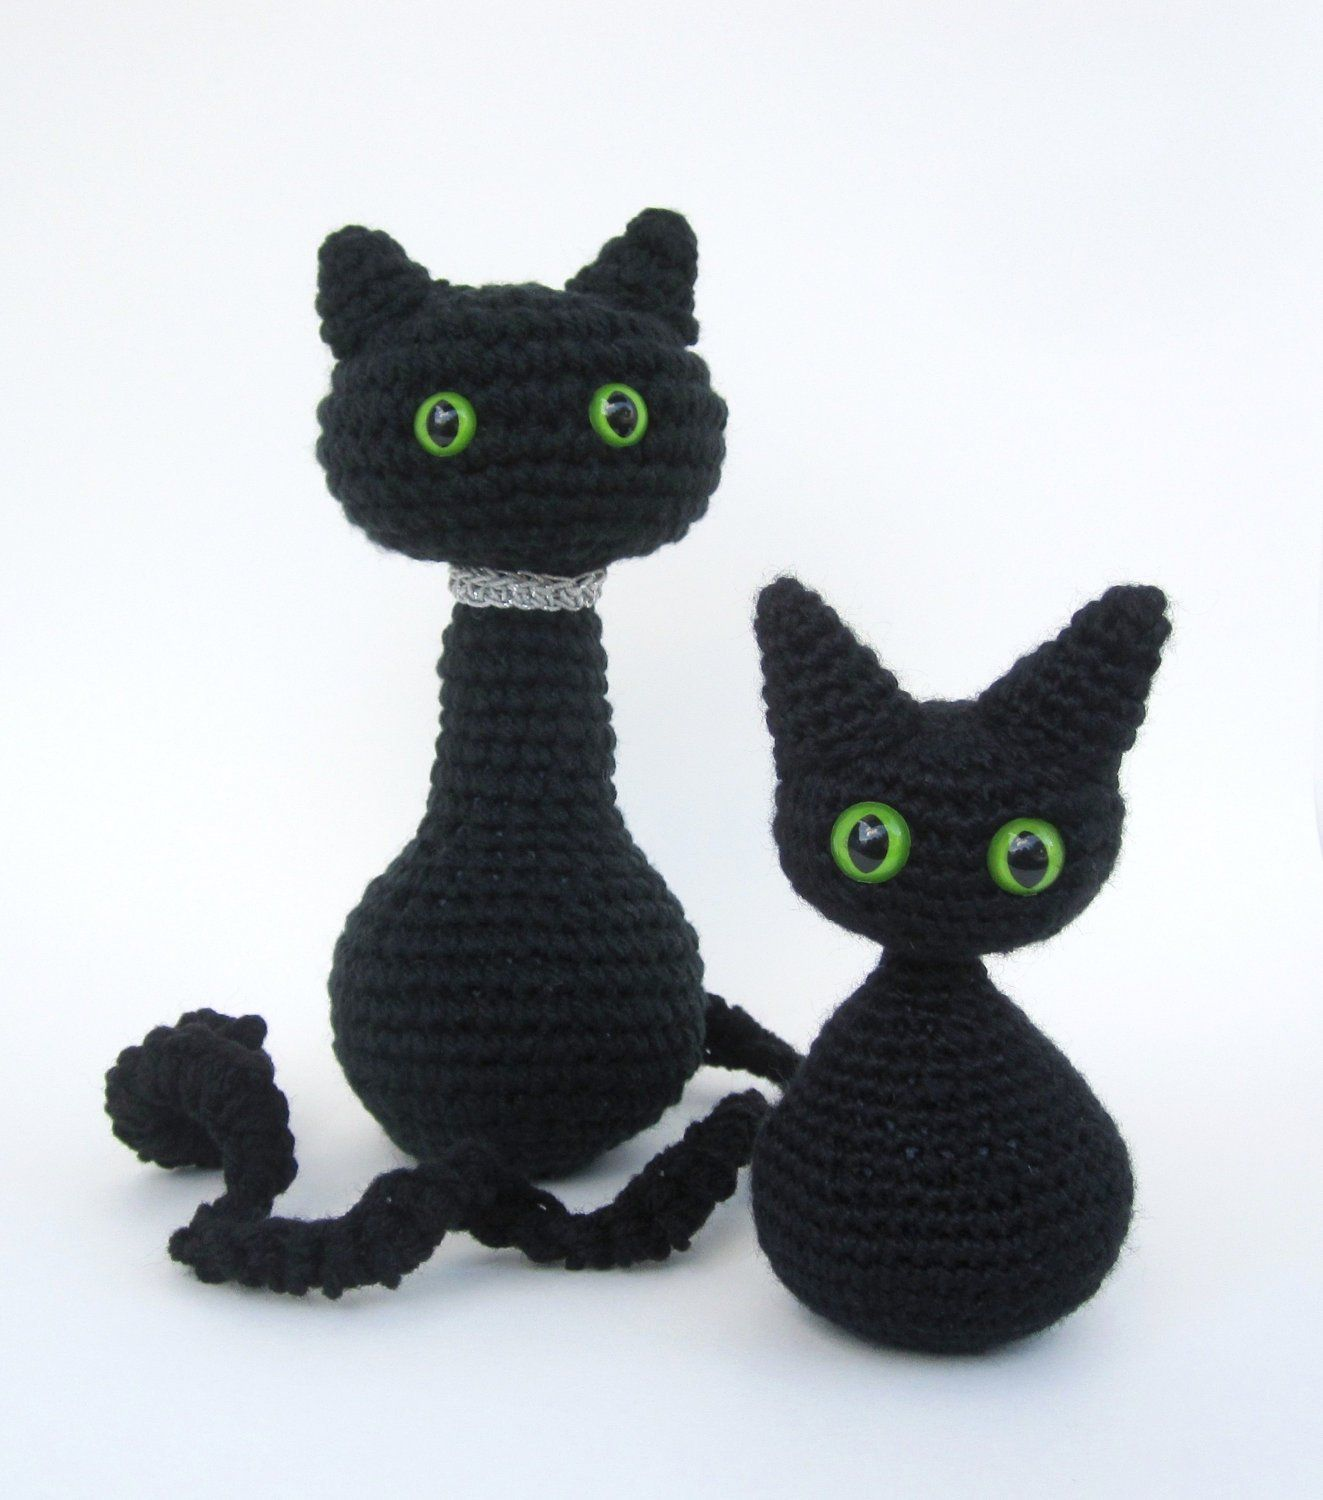 Crochet Cat Amigurumi Pattern | crochet | Pinterest | Patrones ...